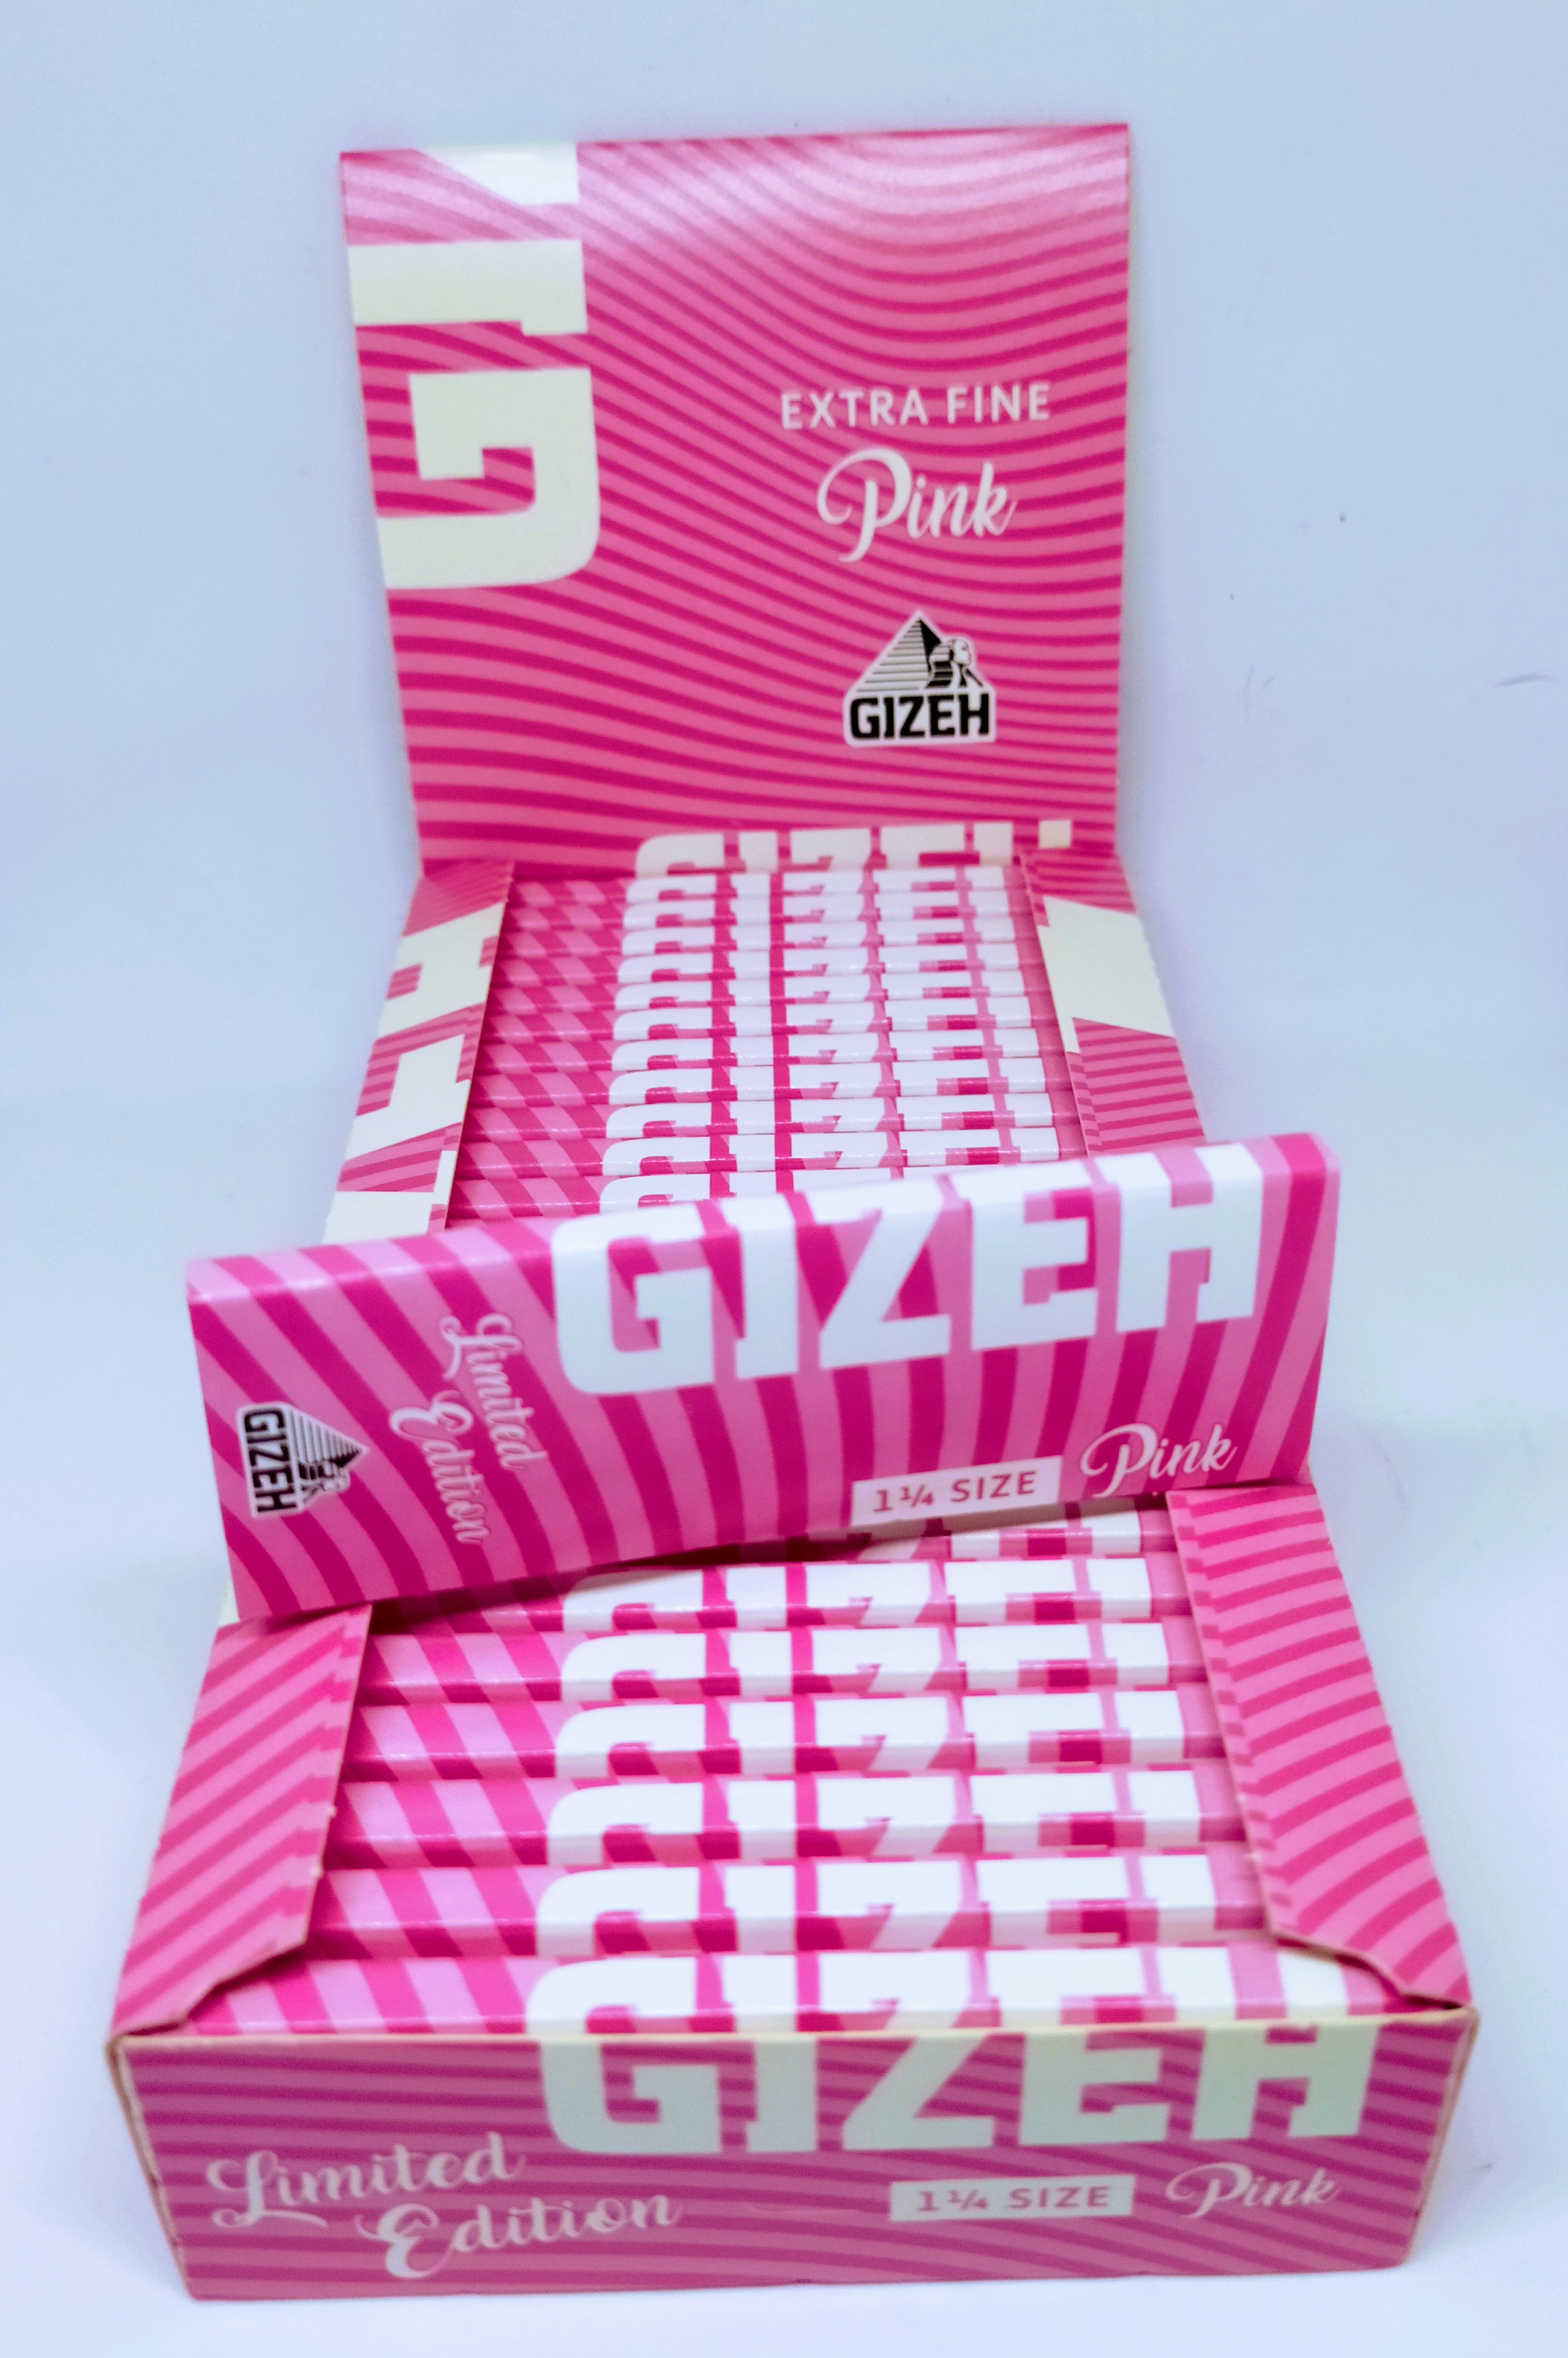 PAPEL GIZEH EXTRA FINO PINK 1 1/4